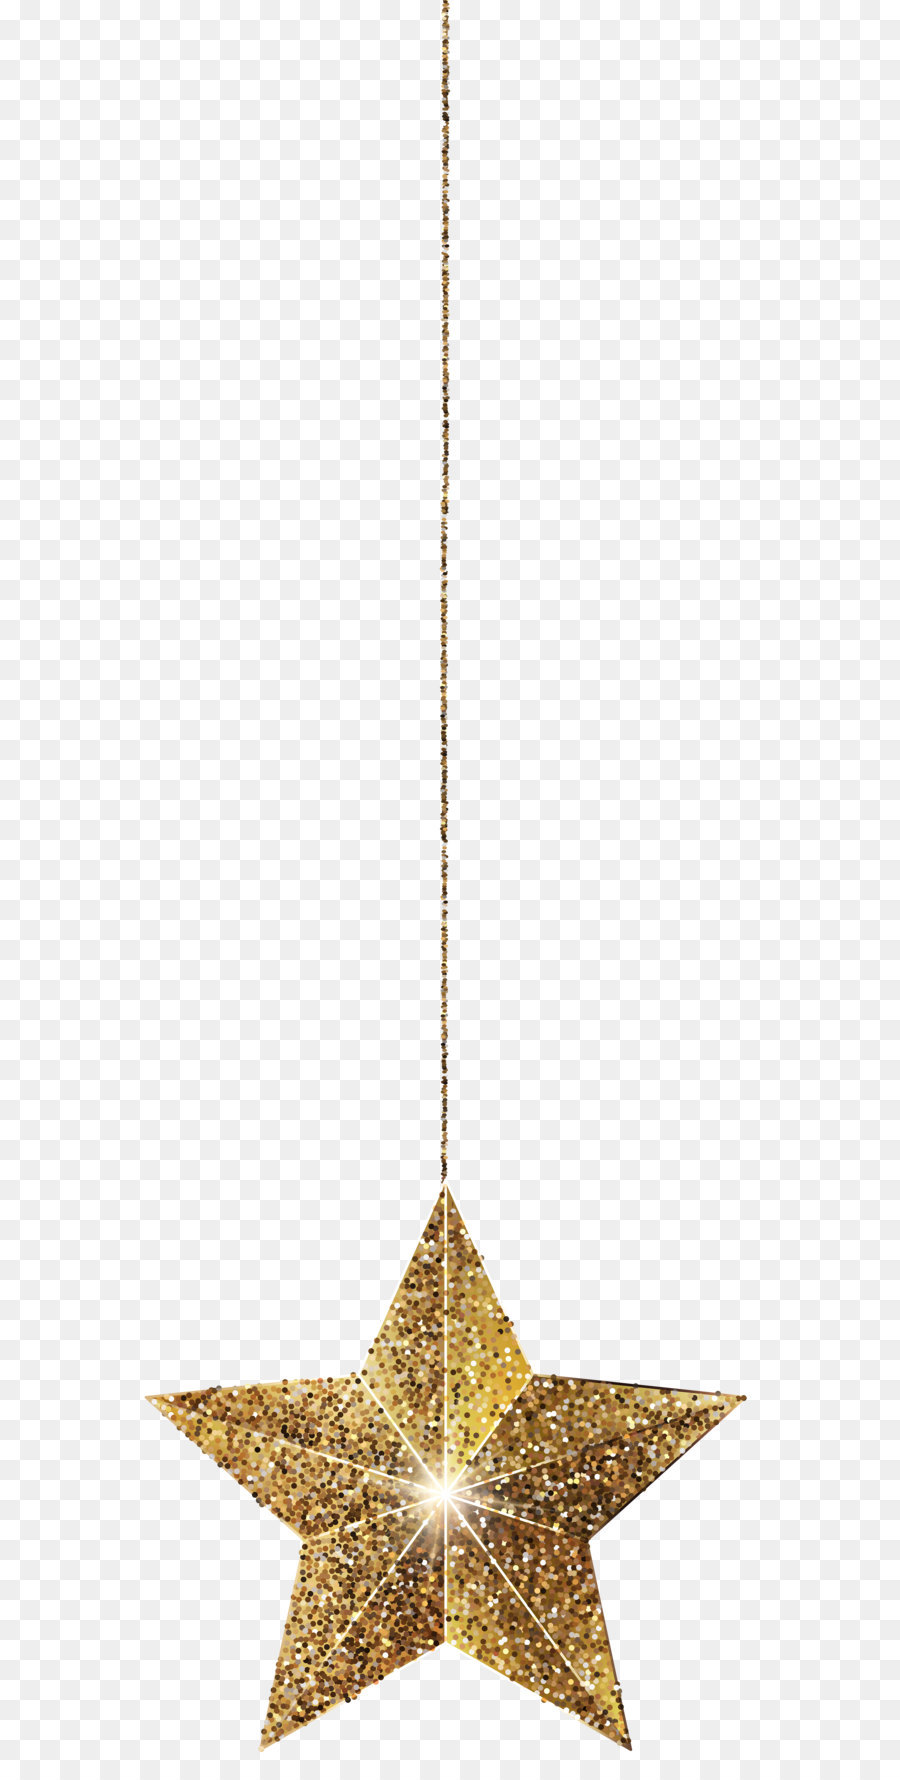 Christmas Chain Png.Golden Star